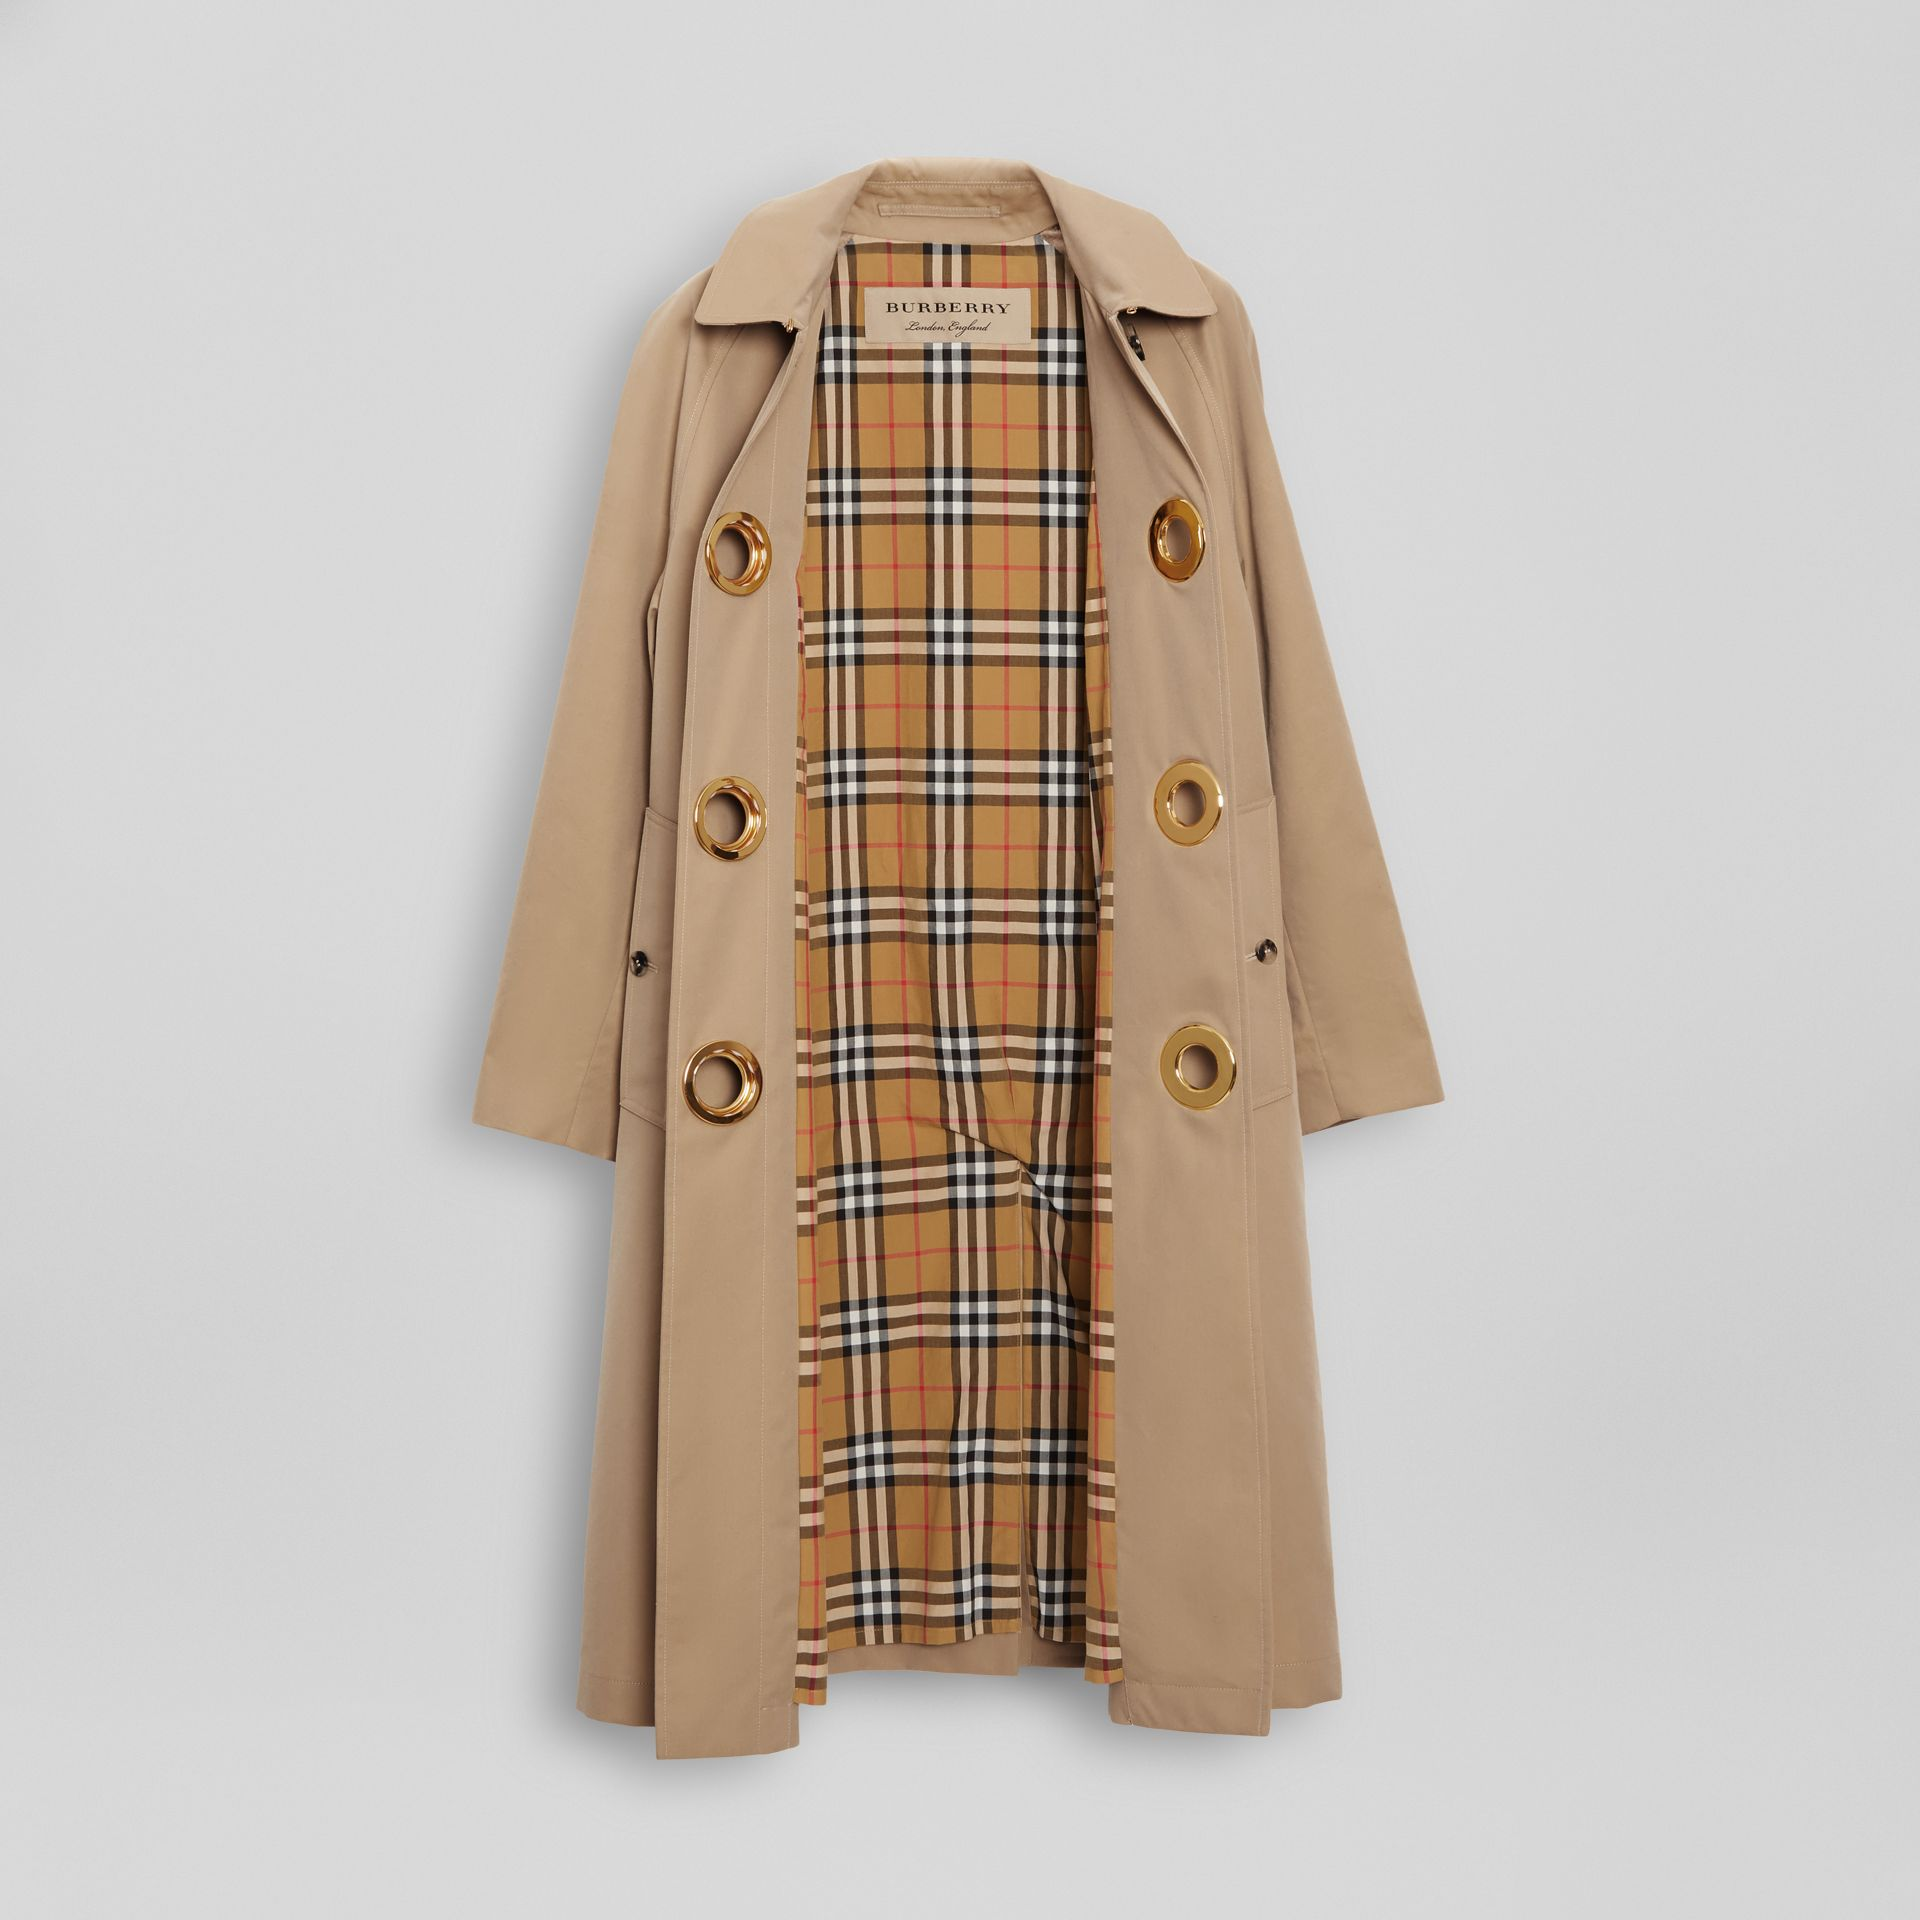 Grommet Detail Cotton Gabardine Car Coat in Honey - Women | Burberry Singapore - gallery image 7